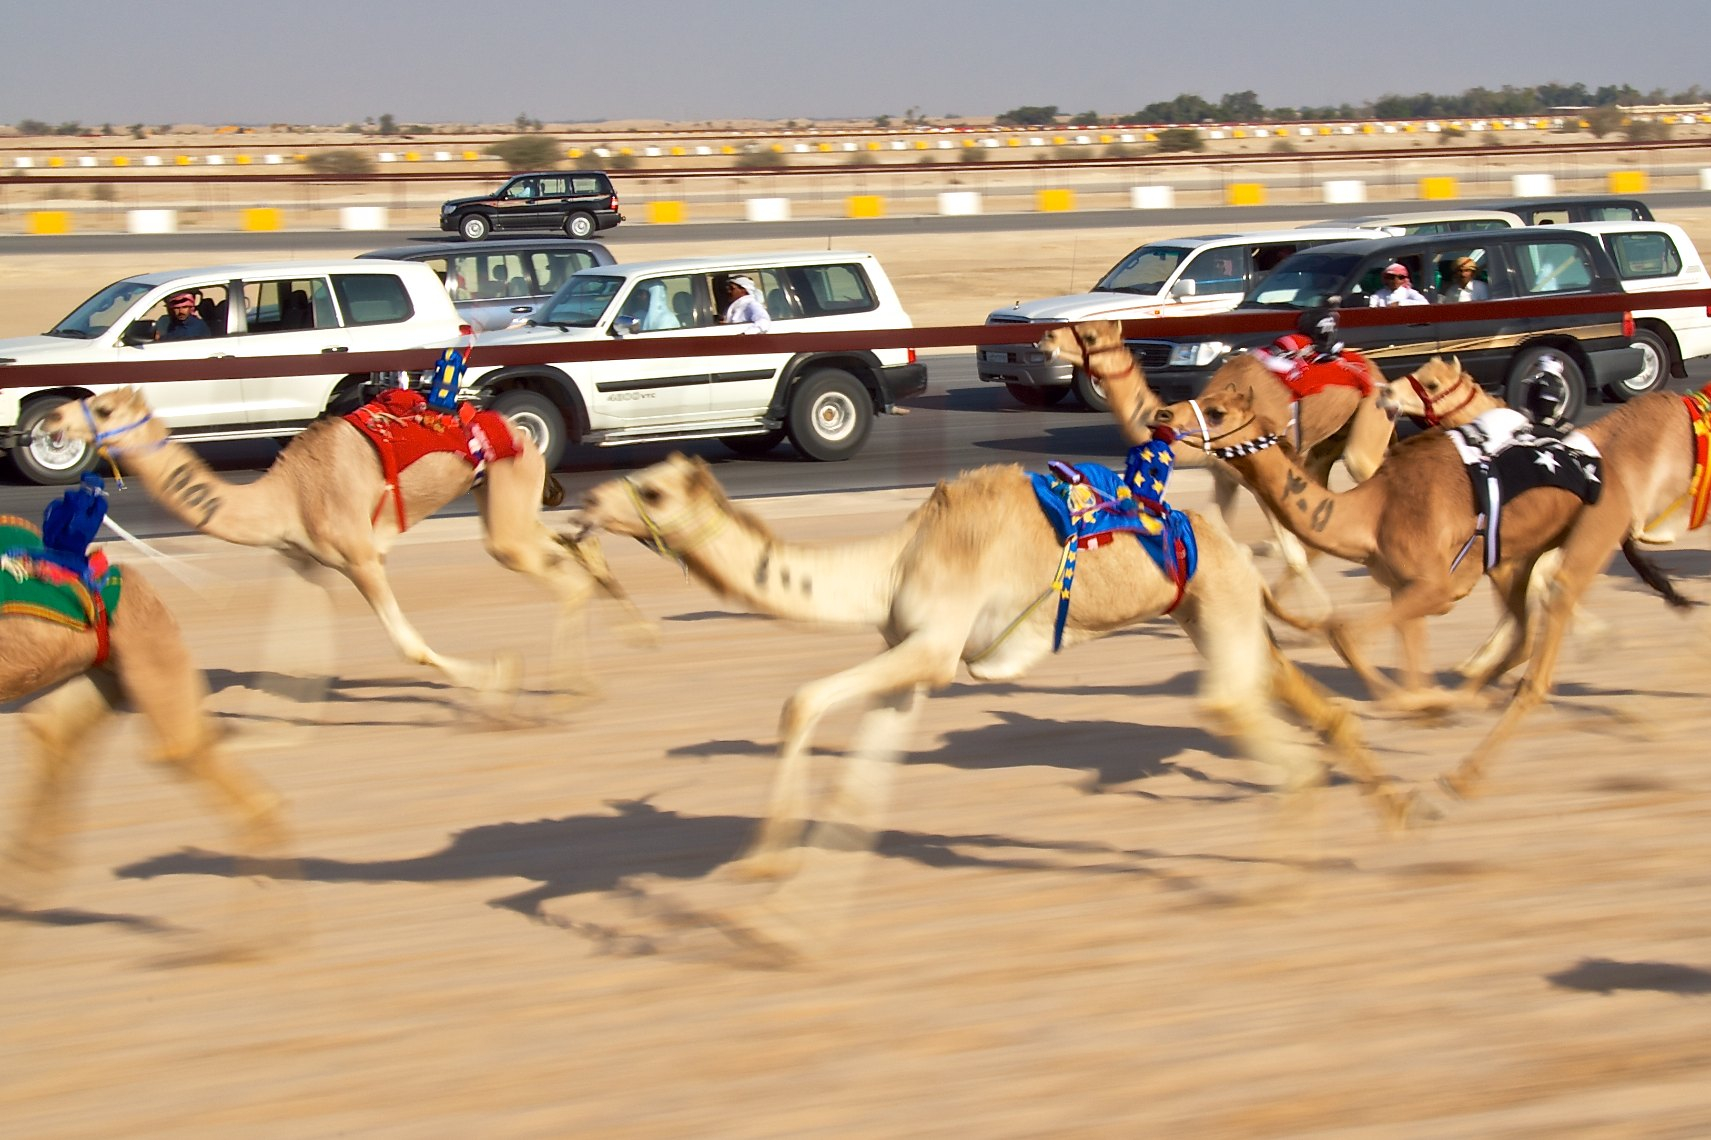 Image result for camel racing qatar